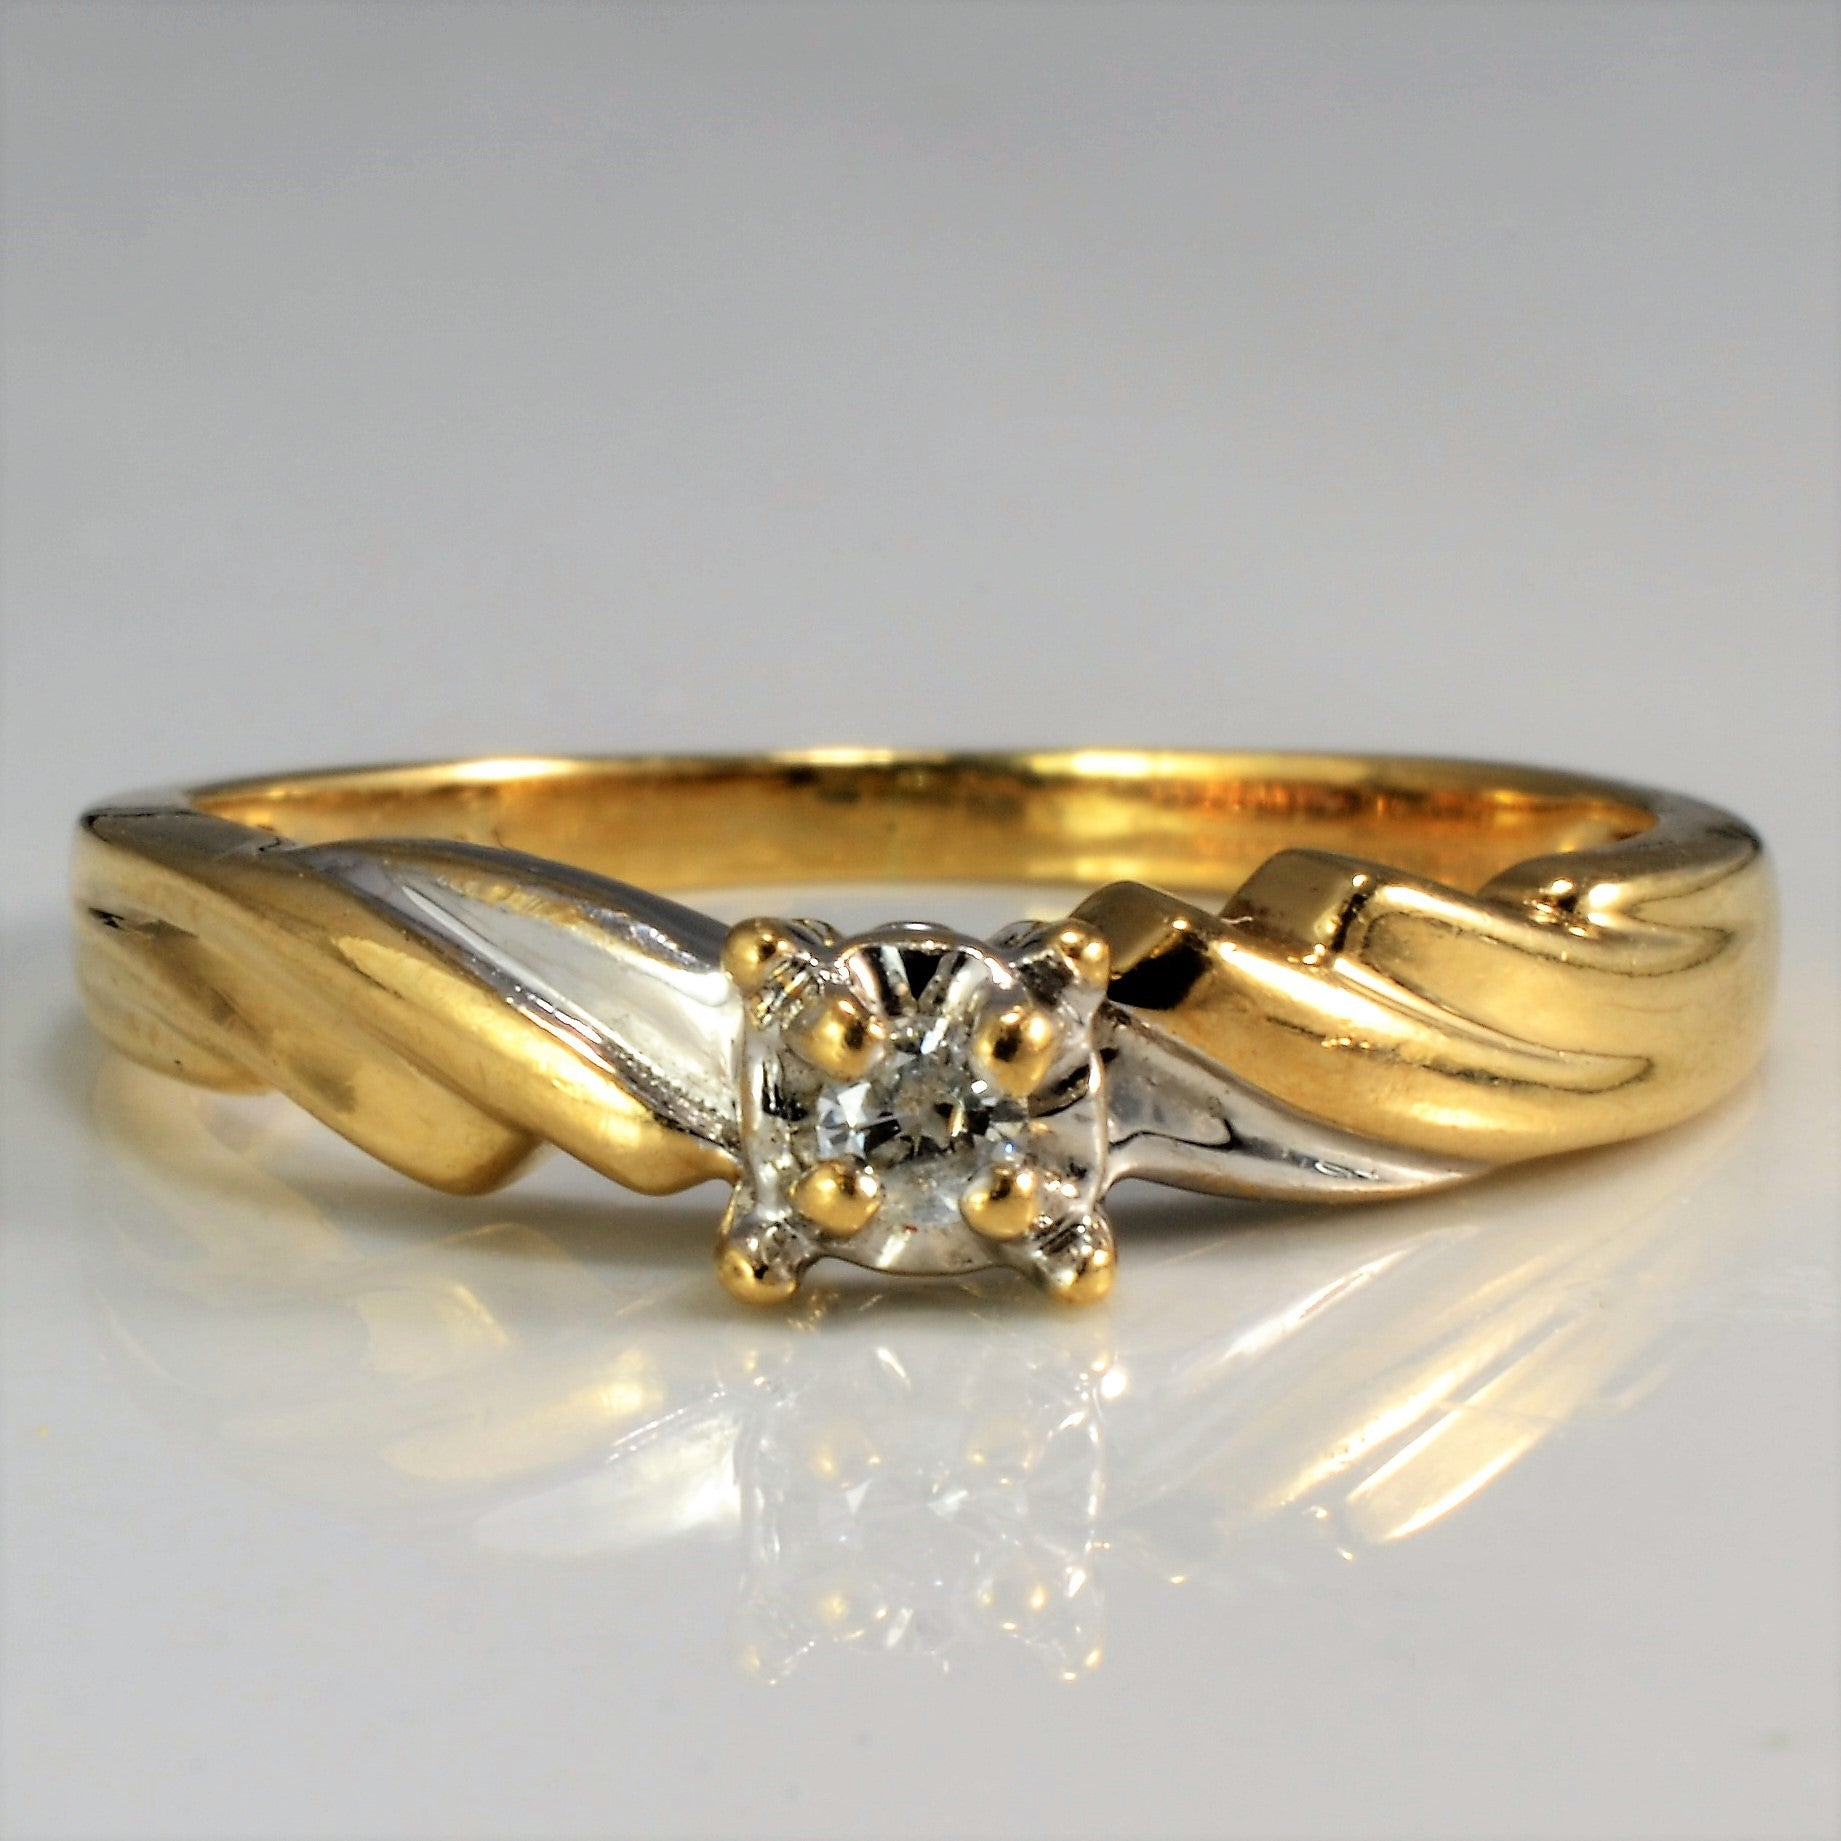 Twisted Two Tone Illusion Set Diamond Ring | 0.04 ct, SZ 6.5 |